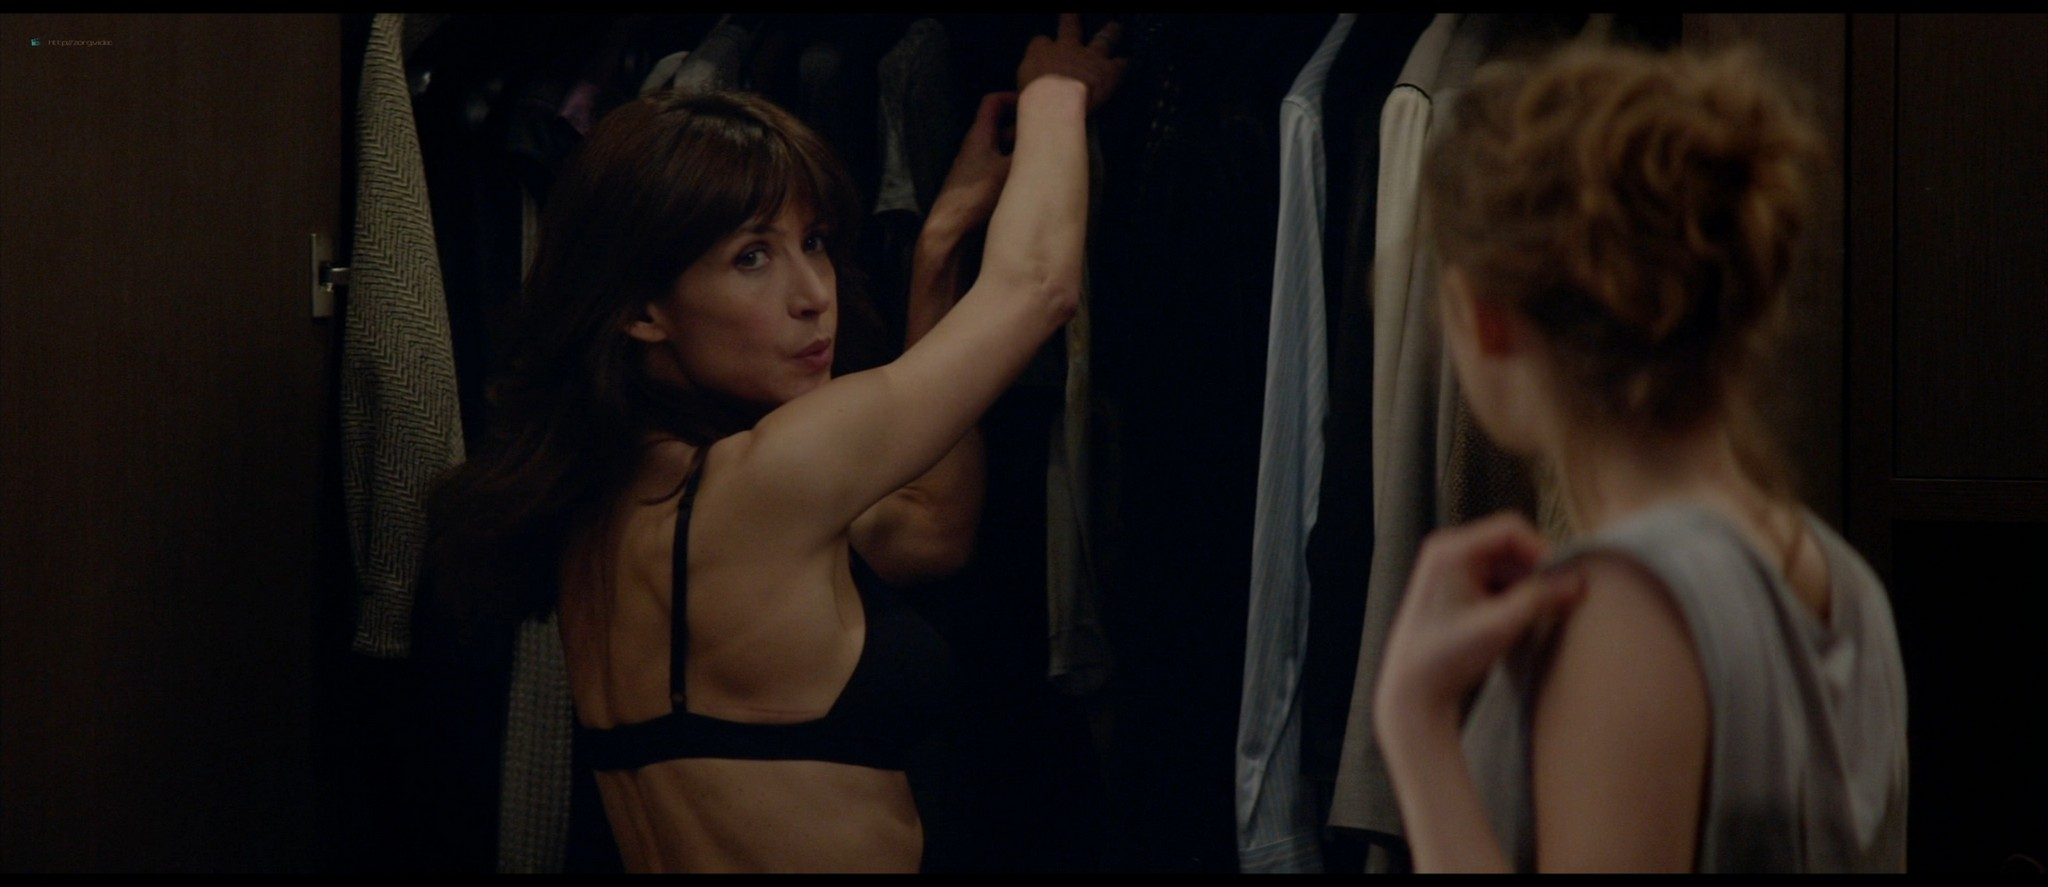 Sophie Marceau nude and sex - Une rencontre (FR-2014) HD 1080p BluRay (13)